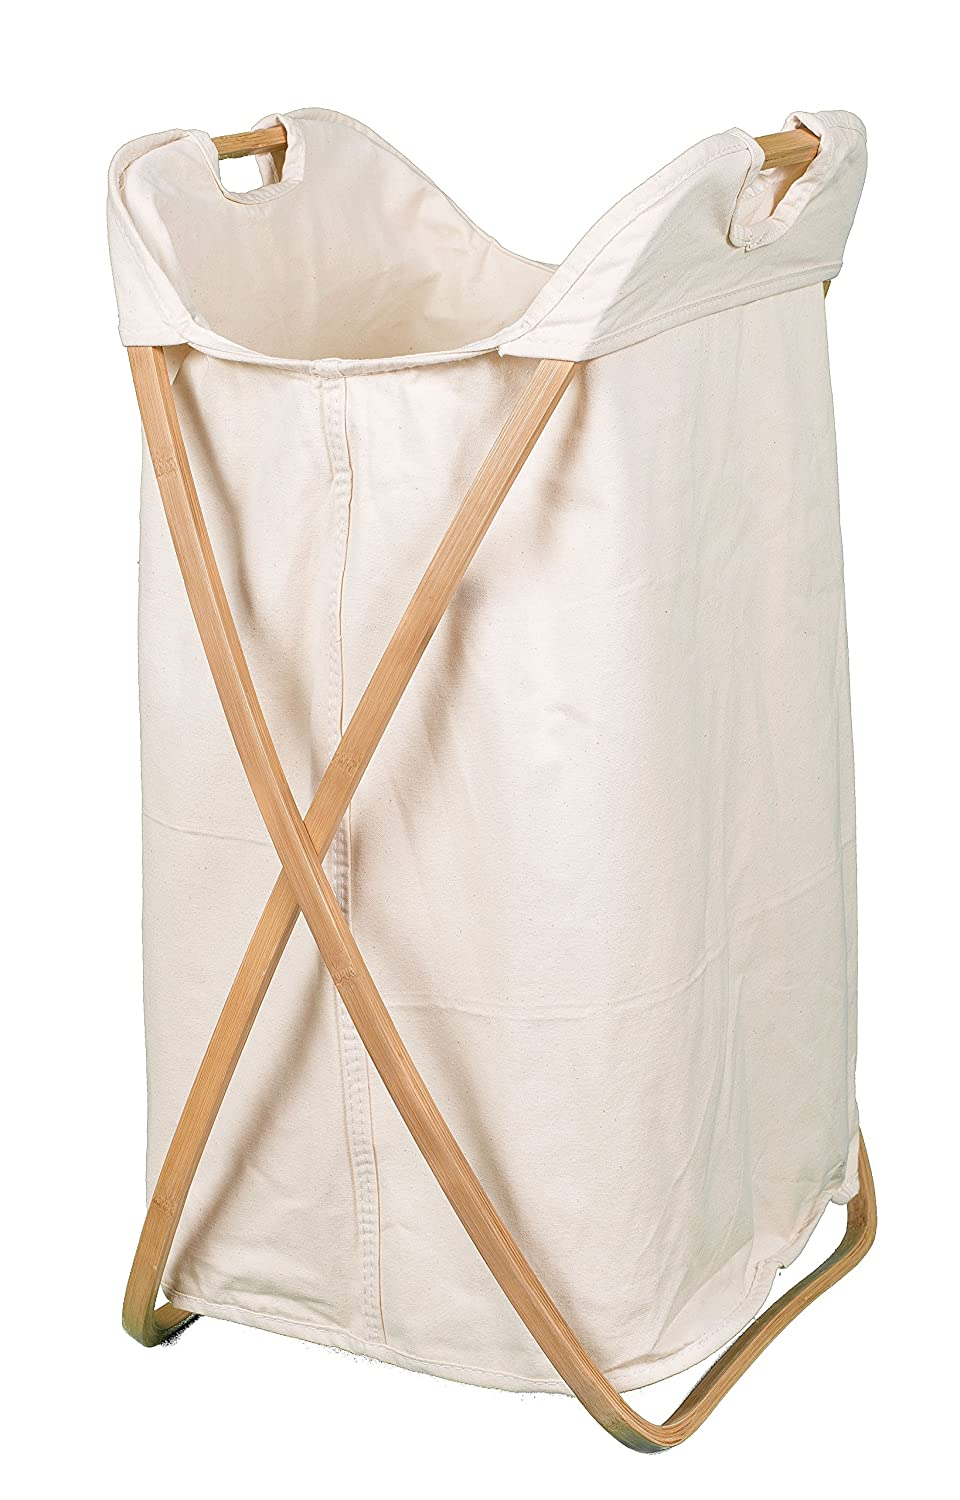 BirdRock Home Folding Butterfly Bamboo Hamper | Made of Natural Bamboo | Includes Machine Washable Cotton Canvas Liner 6557